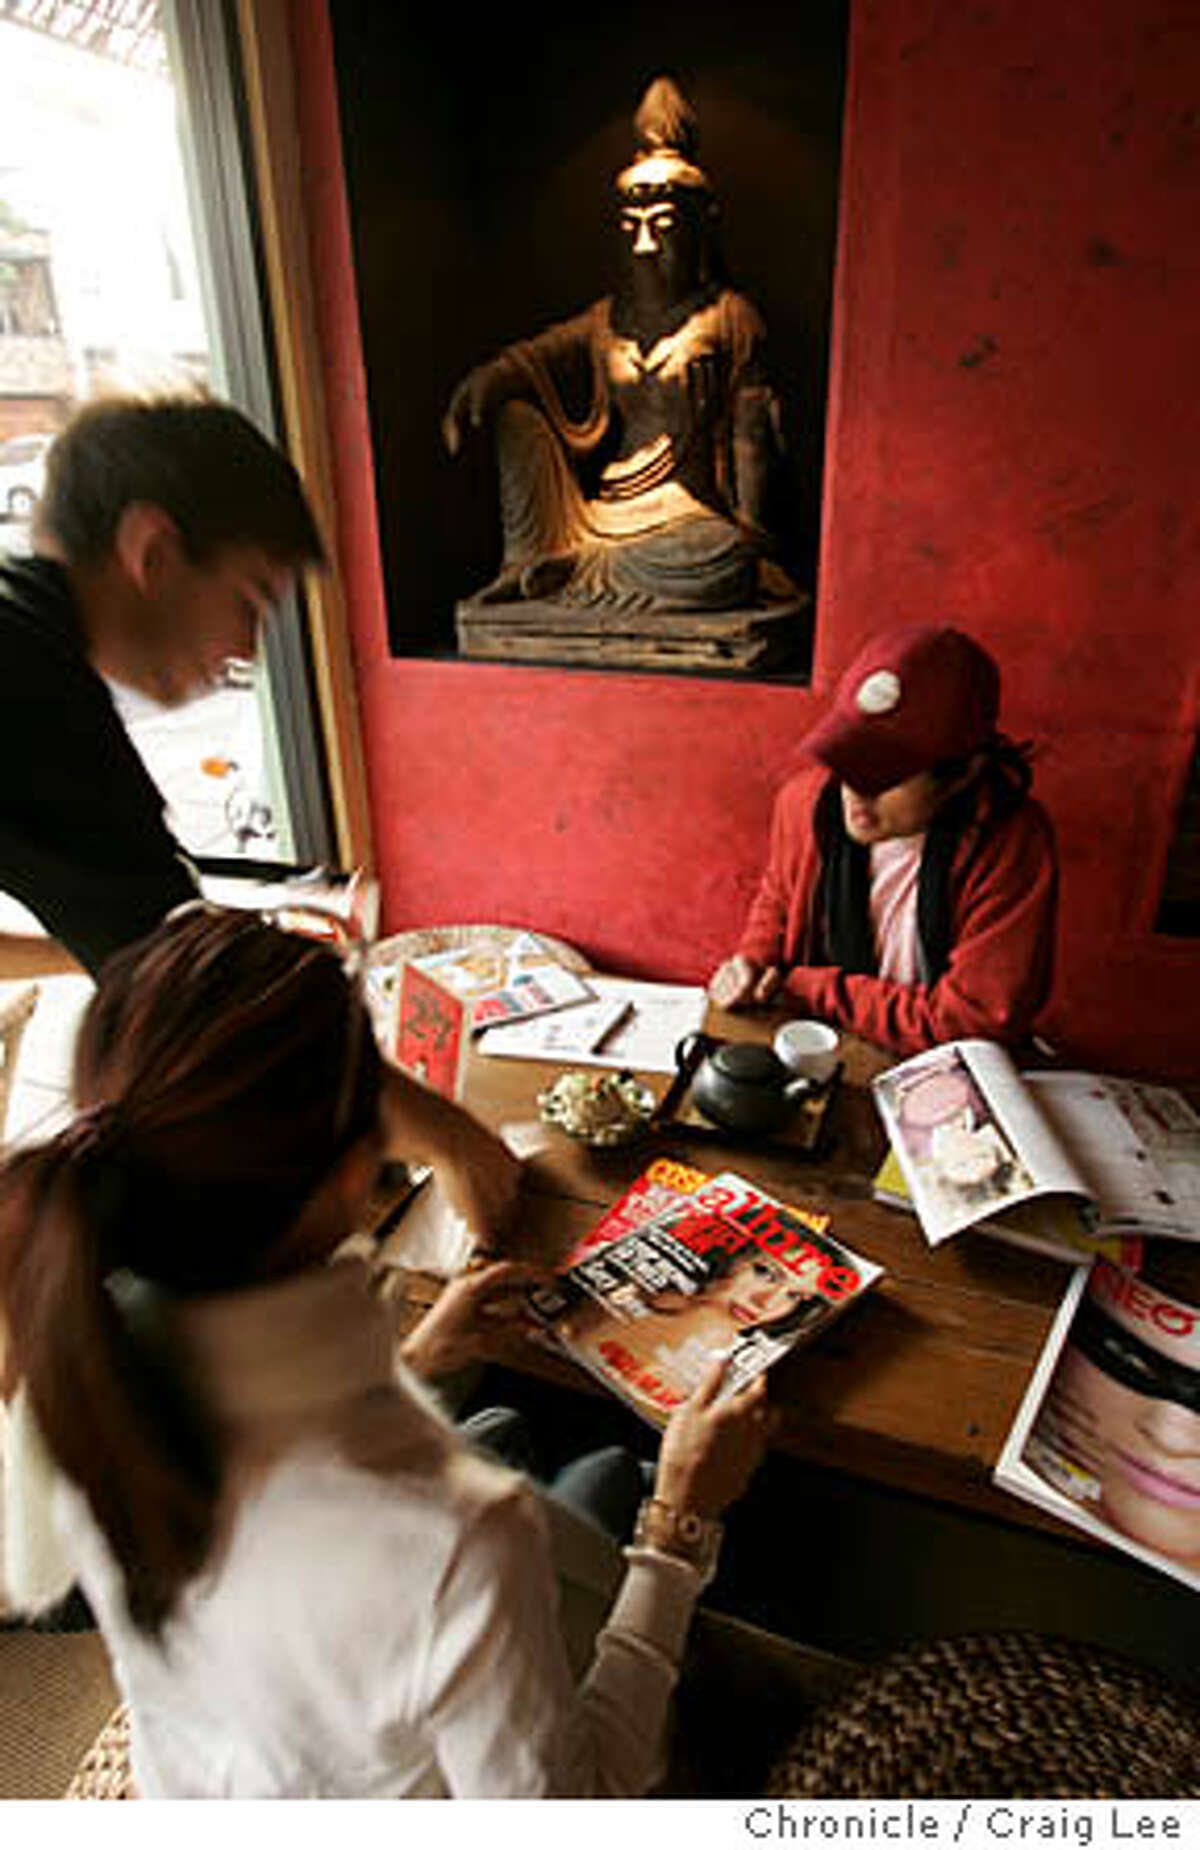 Samovar Tea Lounge at 498 Sanchez street at 18th street. Photo of Adam O'Neill (far left) serving, Linda Pham middle foreground, and Fernando Kabigting. The two are art students looking over magazines while getting some tea. Event on 11/30/04 in San Francisco. Craig Lee / The Chronicle